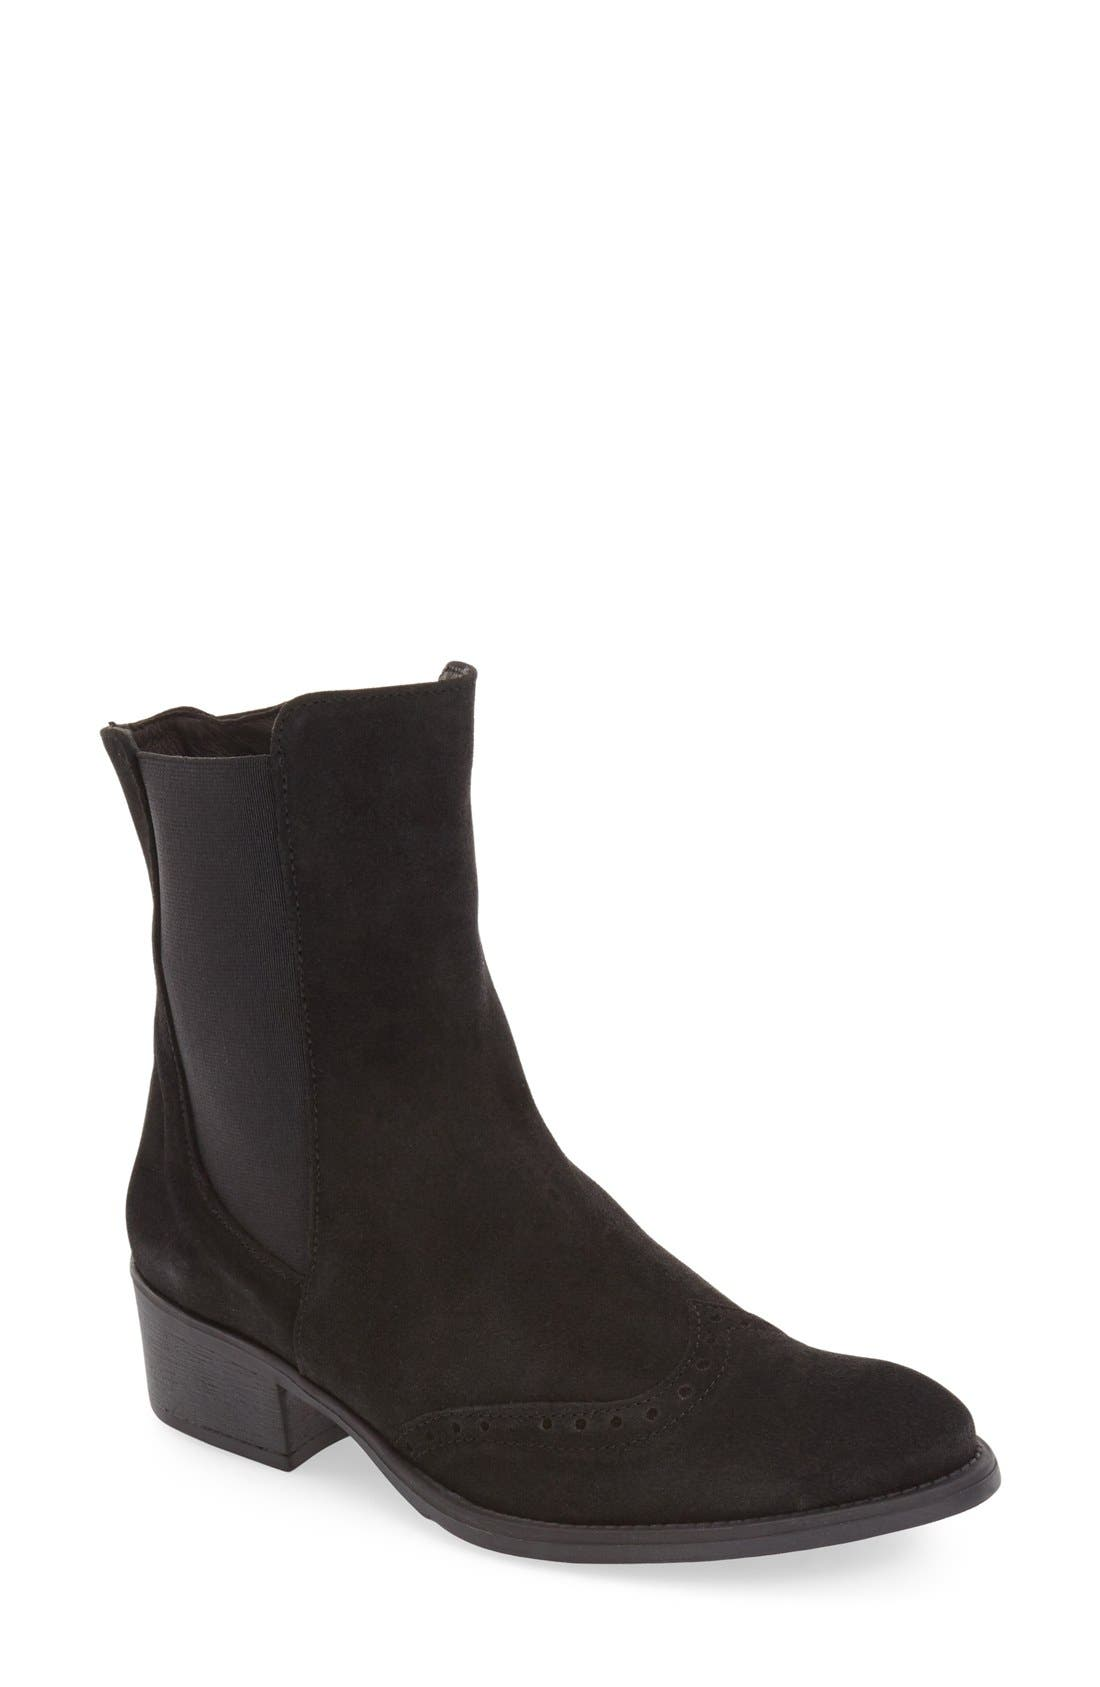 Alternate Image 1 Selected - Toni Pons 'Trieste' Chelsea Boot (Women)